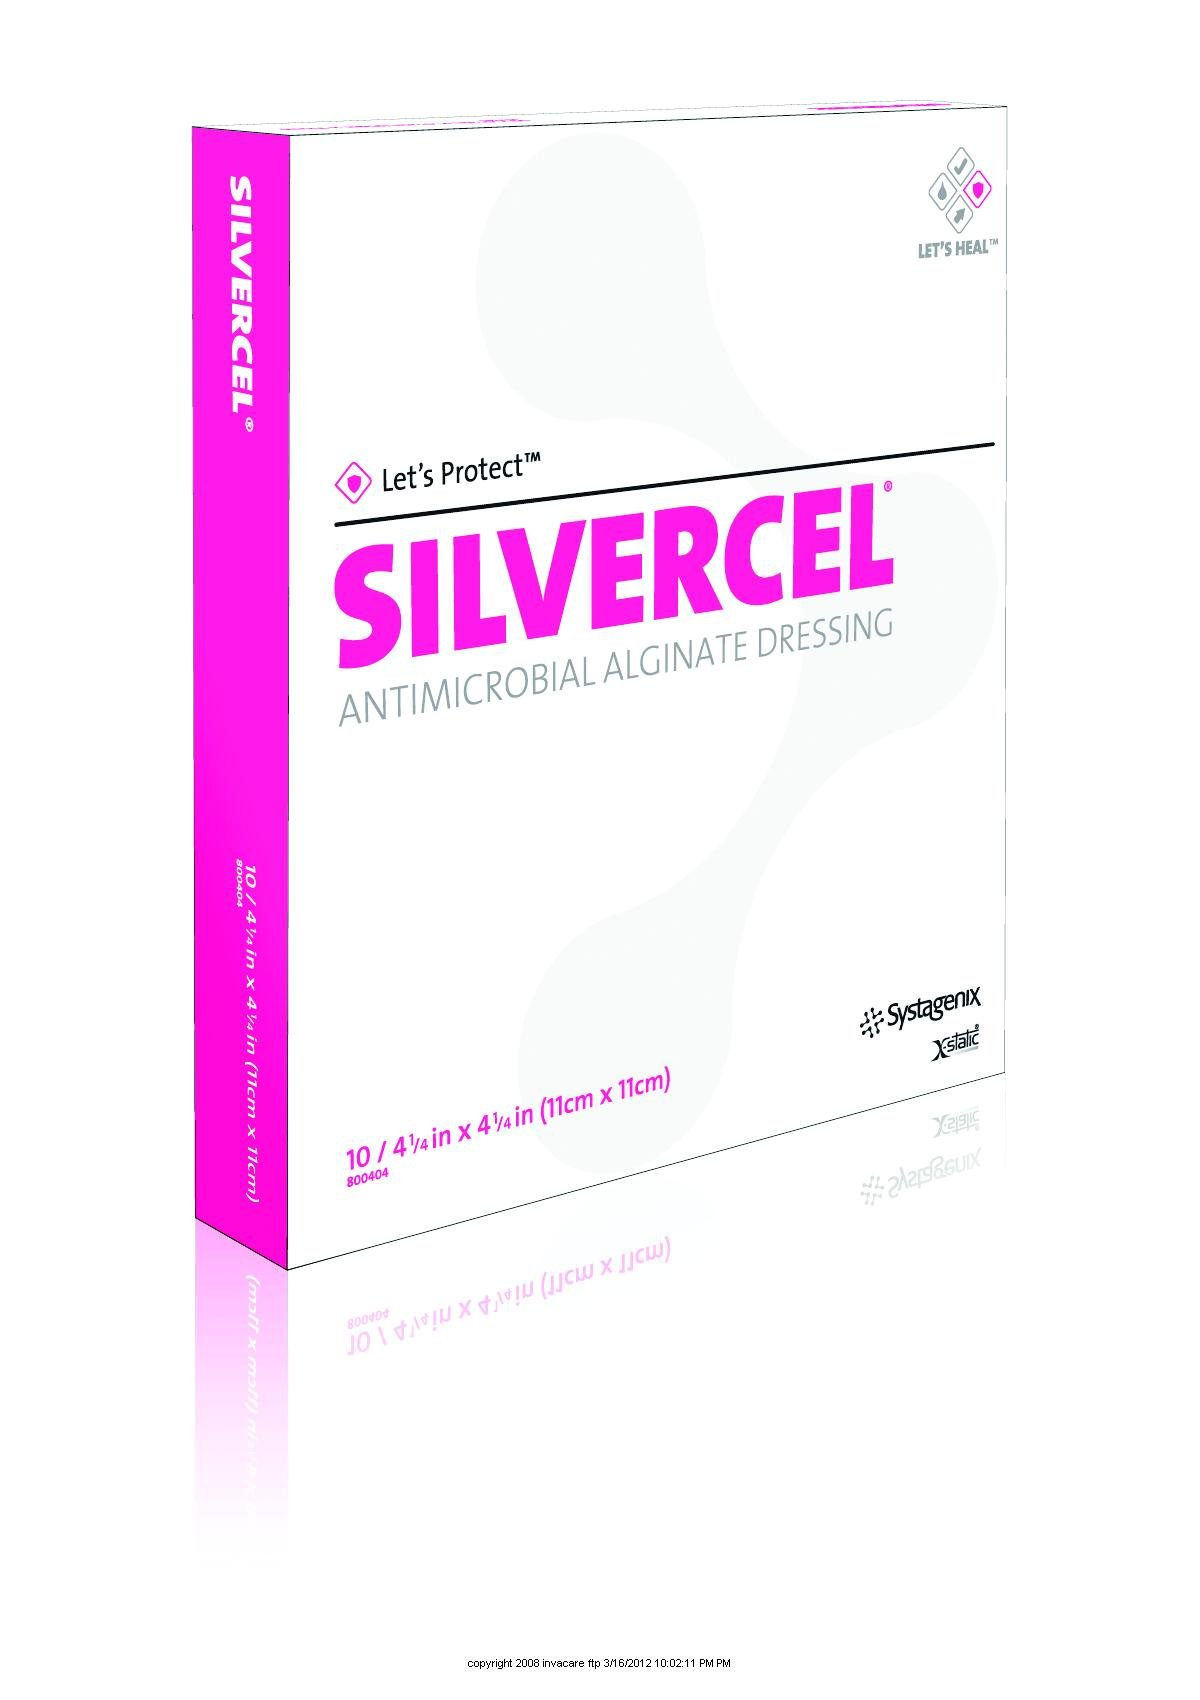 SILVERCEL Antimicrobial Alginate Dressing [SILVERCEL dressingNG 4X4] by SYSTAGENIX WOUND MNGMNT